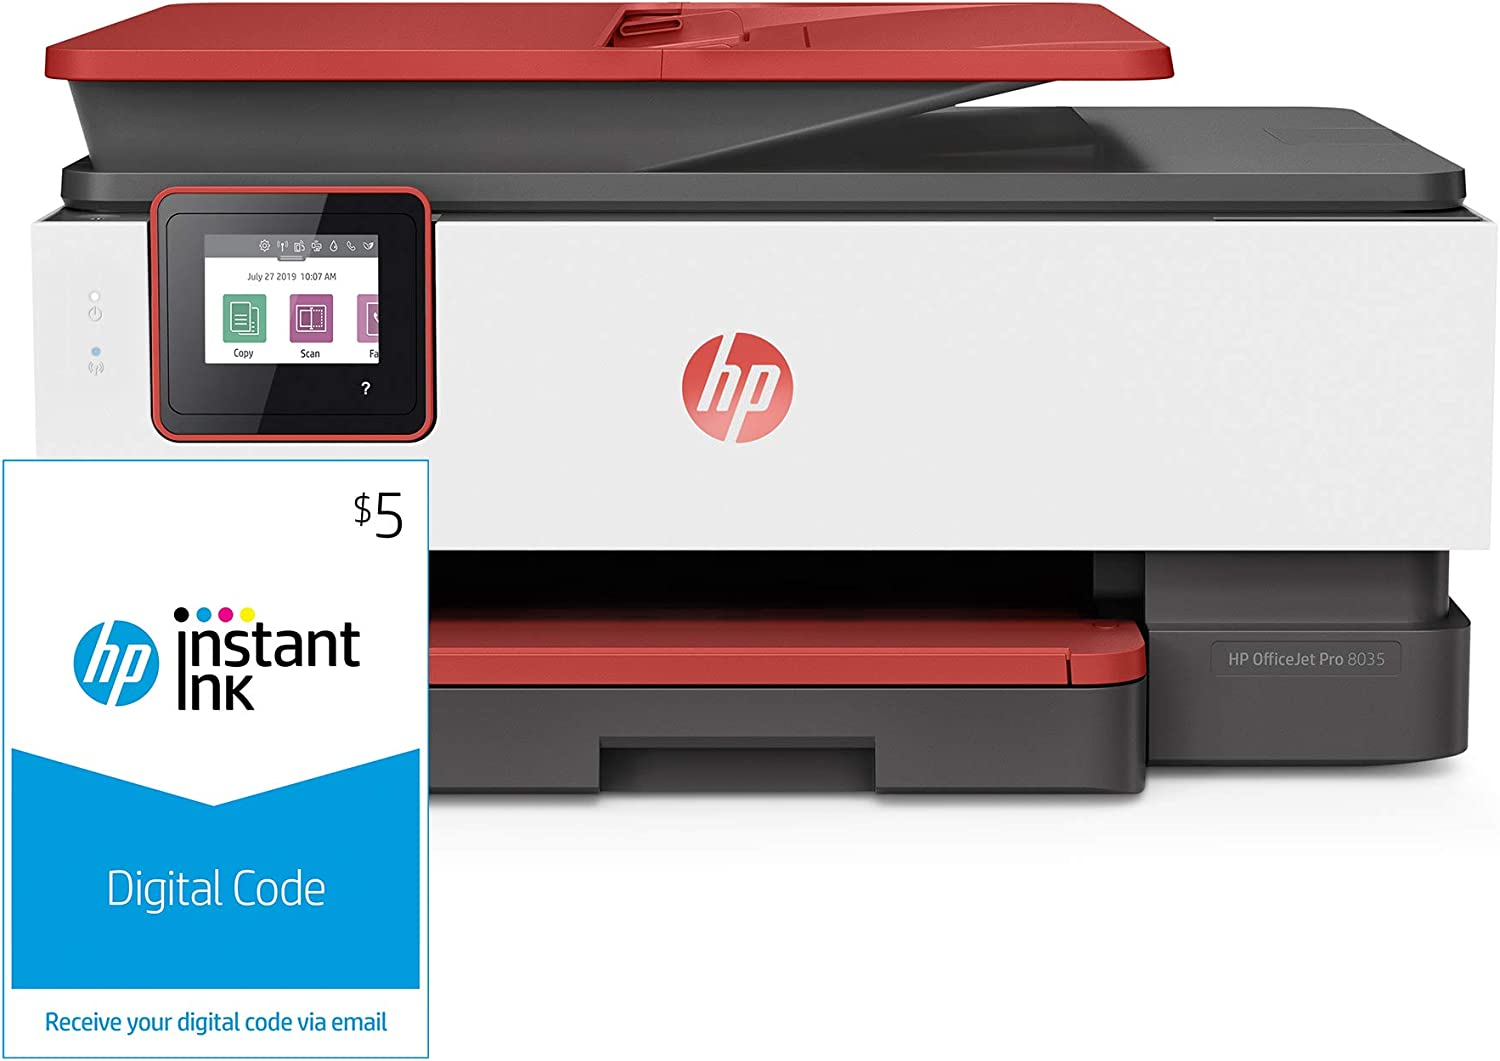 HP OfficeJet Pro 8035 All-in-One Wireless Printer, Coral (4KJ65A) and Instant Ink $5 Prepaid Code